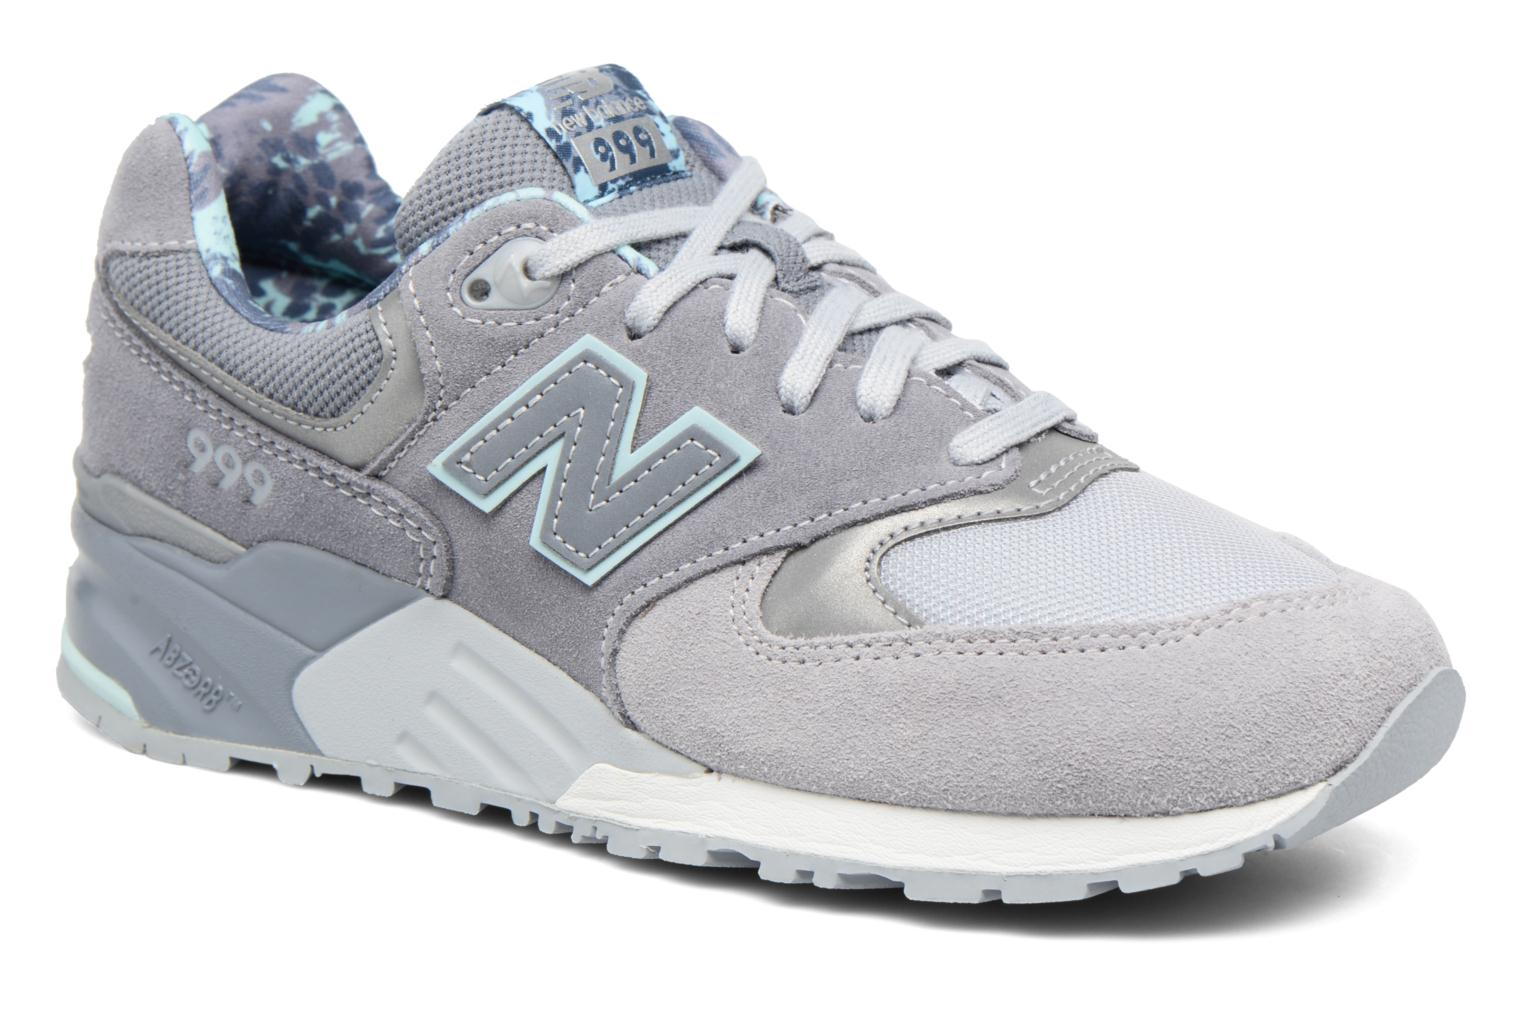 Sneakers WL999 by New Balance